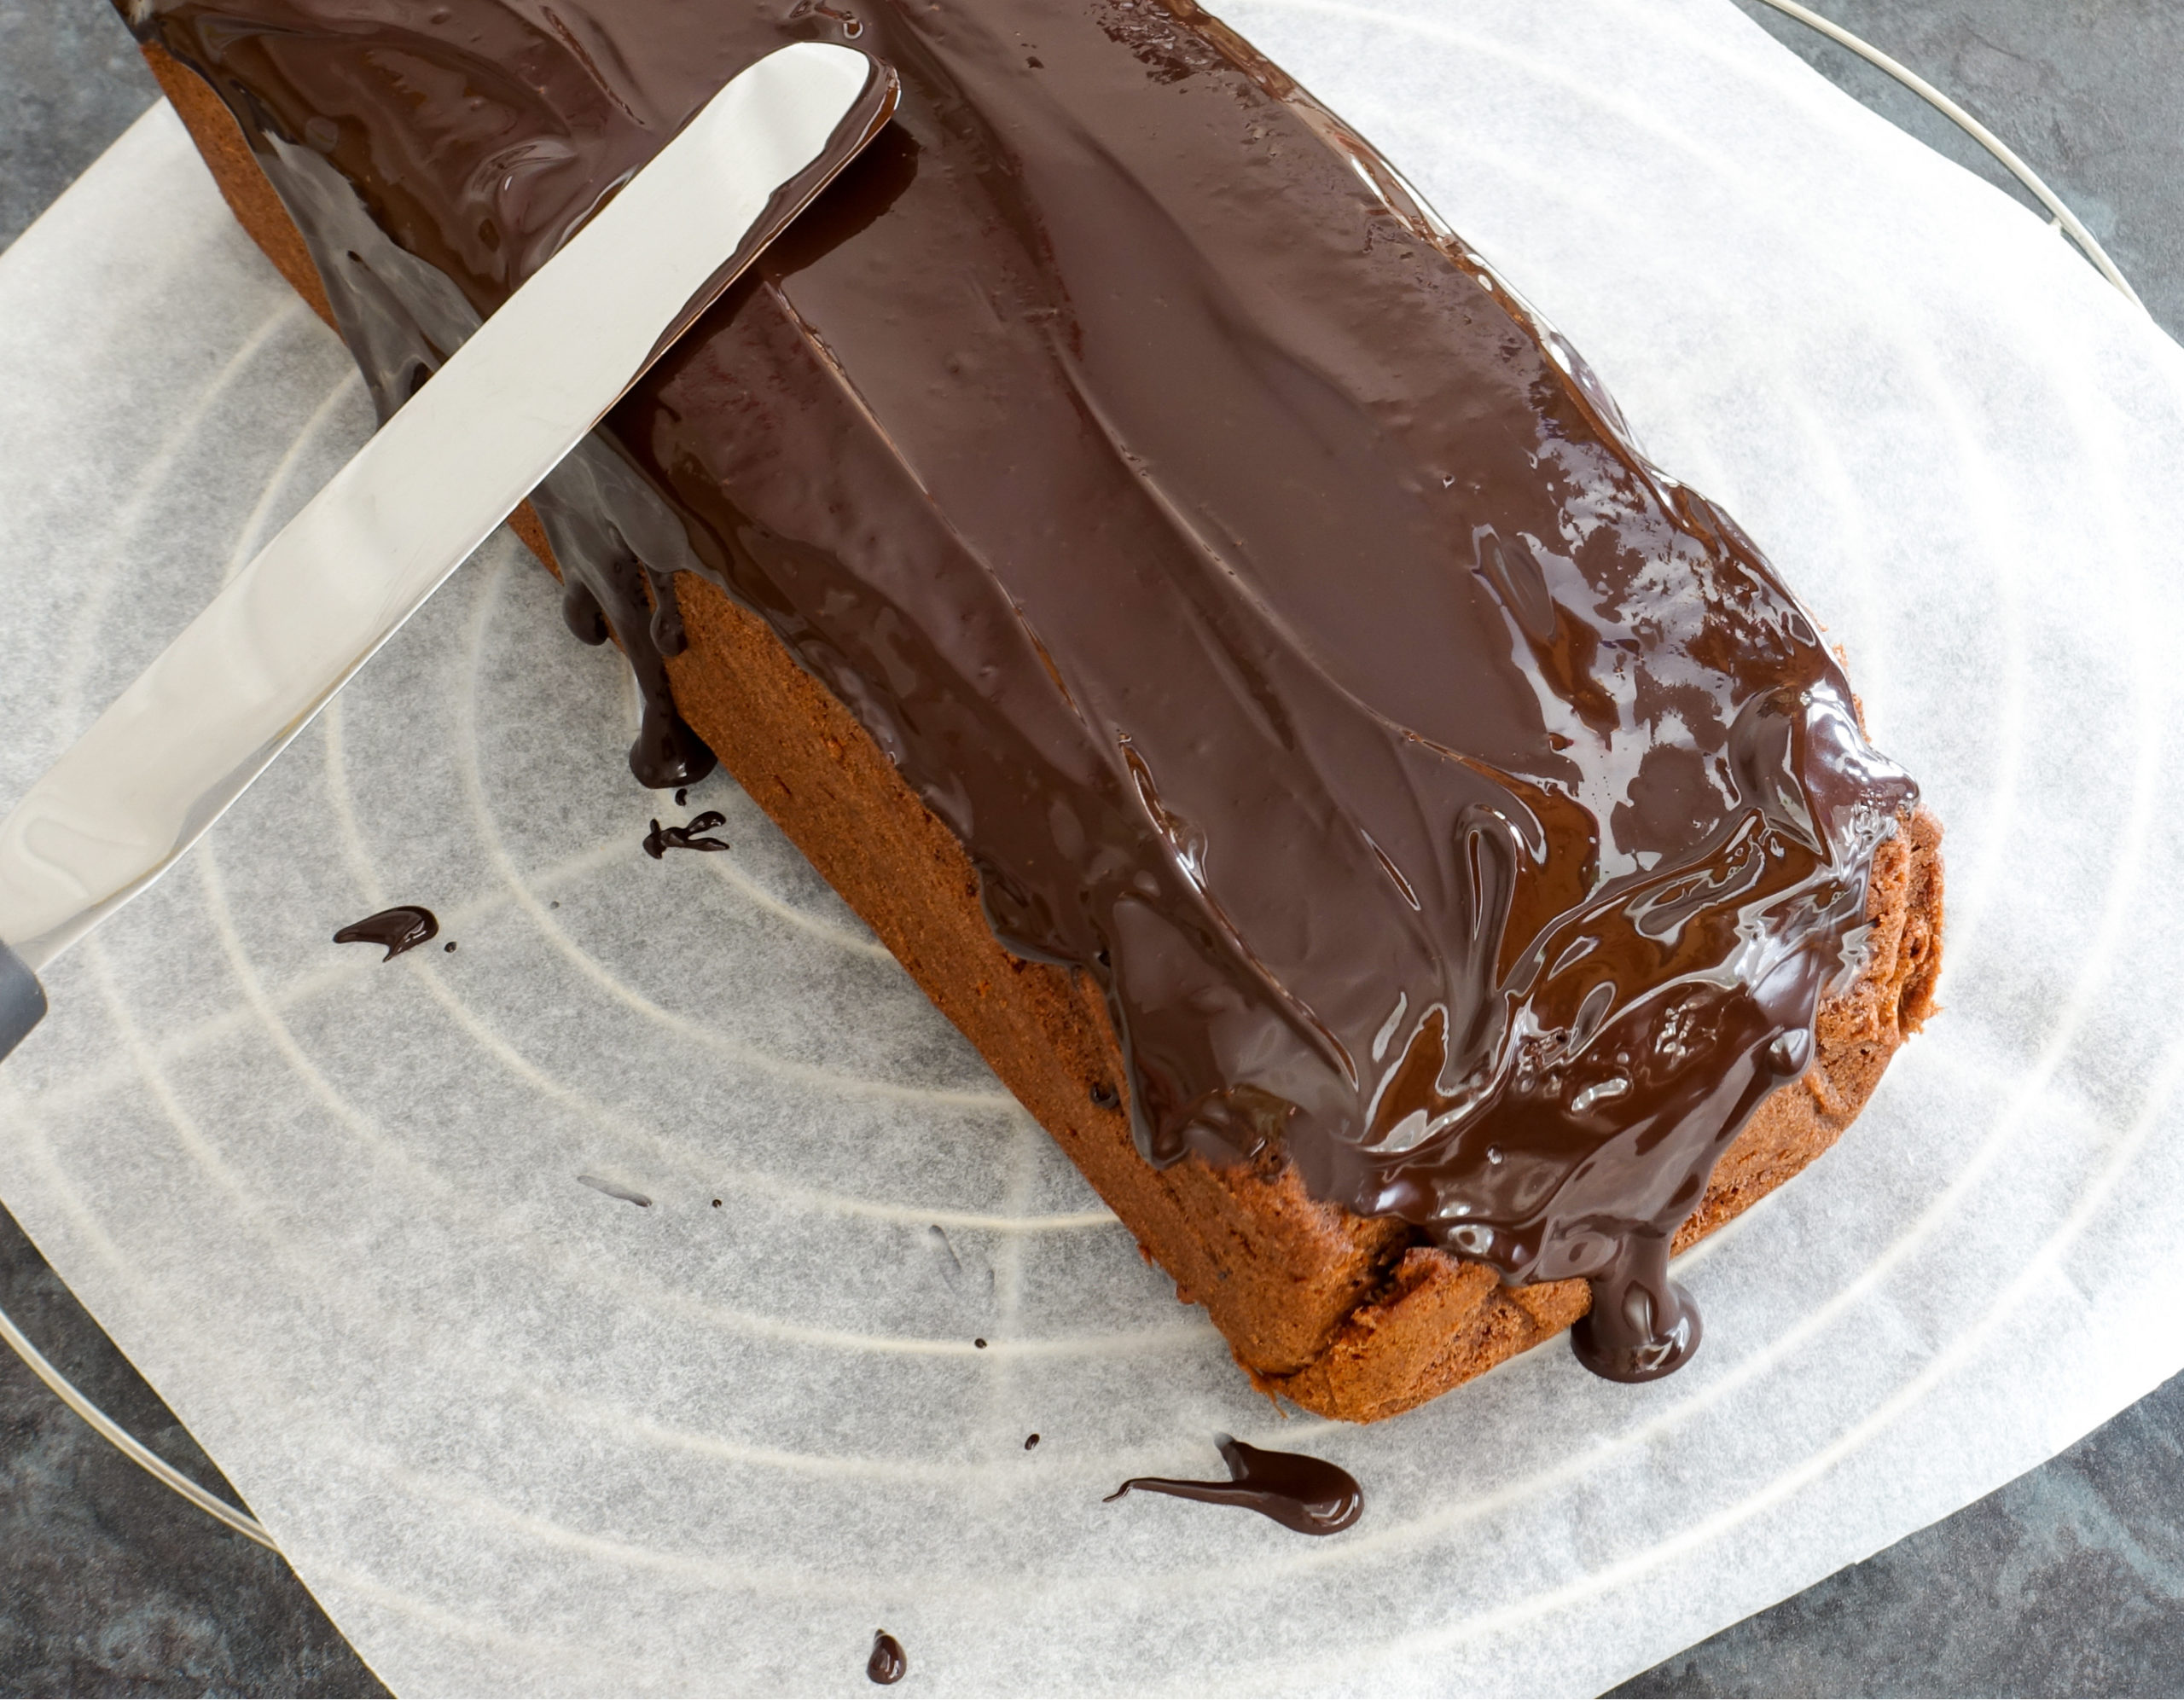 keto sour cream chocolate pound cake with chocolate ganache being smoothed over the top